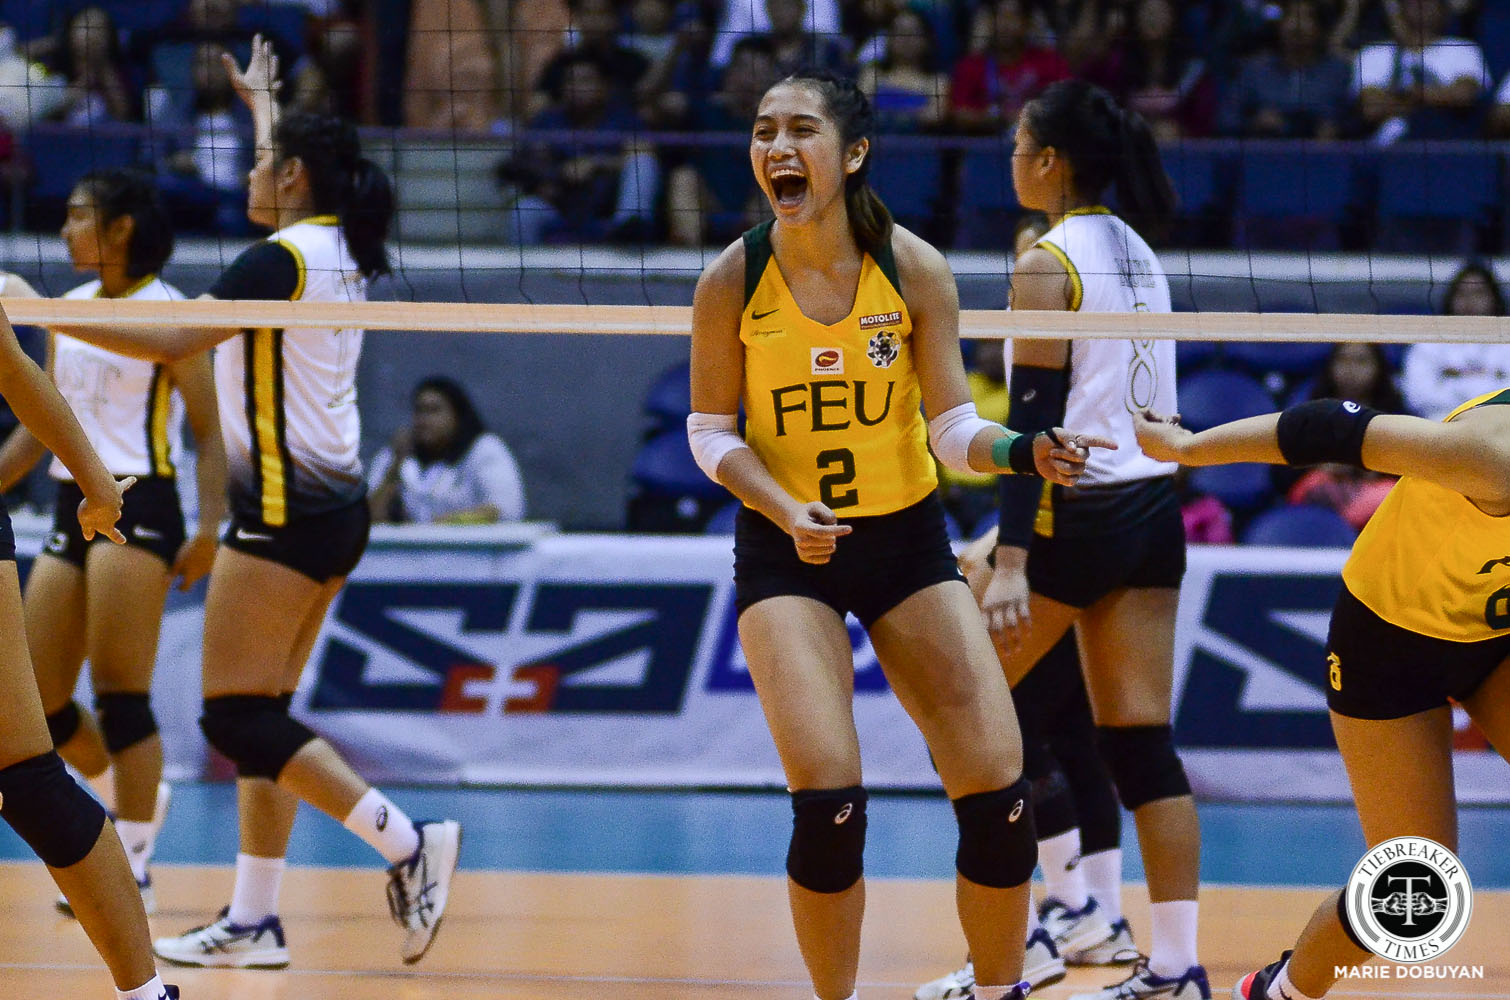 Tiebreaker Times Lycha Ebon looks to make up for lost time with FEU Lady Tamaraws FEU News UAAP Volleyball  UAAP Season 82 Women's Volleyball UAAP Season 82 Lycha Ebon FEU Women's Volleyball